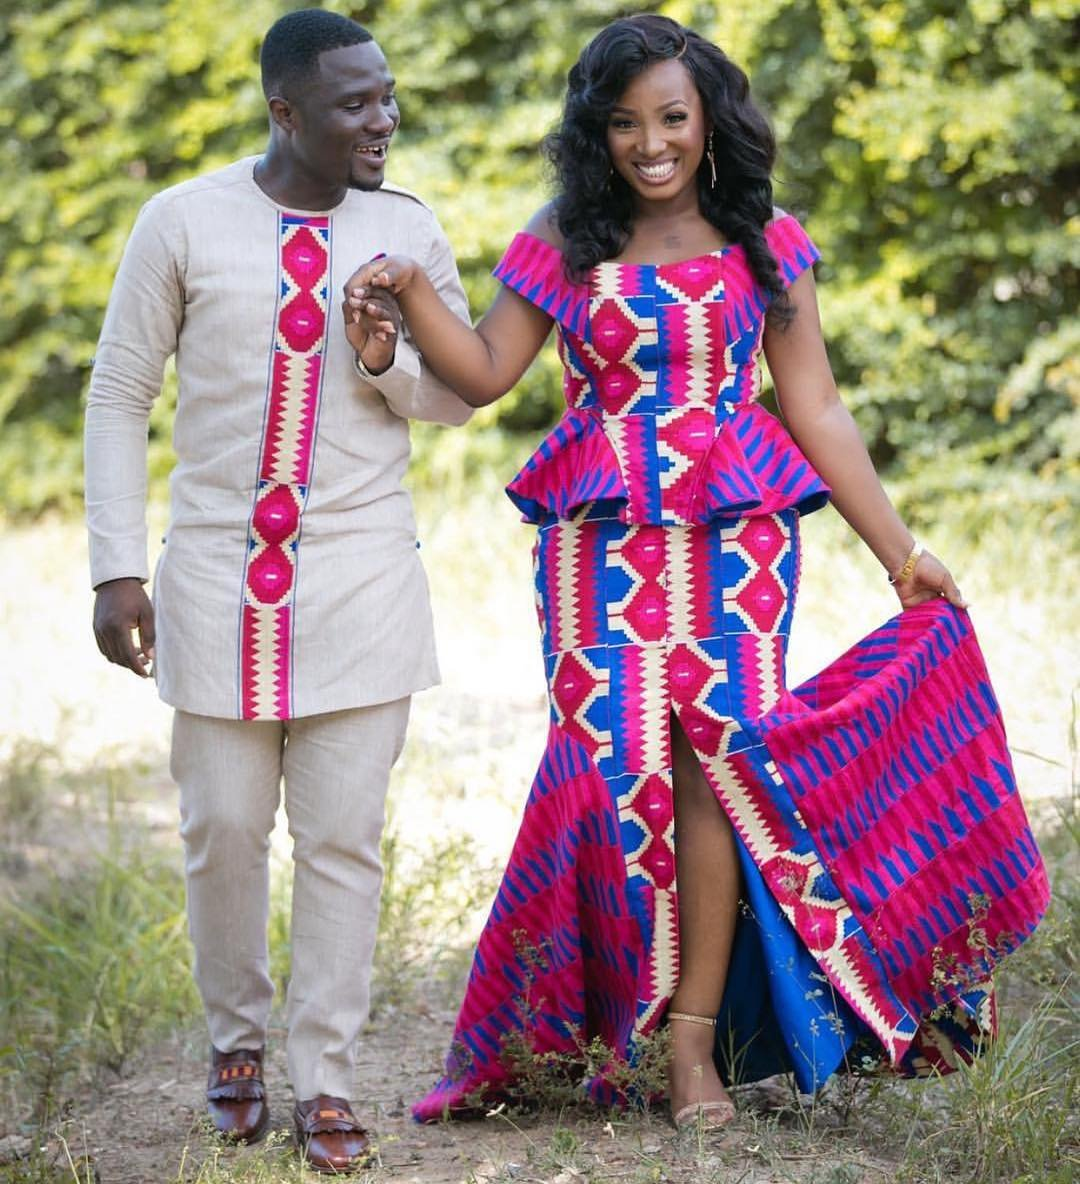 Hairstyle For Traditional Wedding: Elegant & Glamorous African Wedding Dresses In Kente